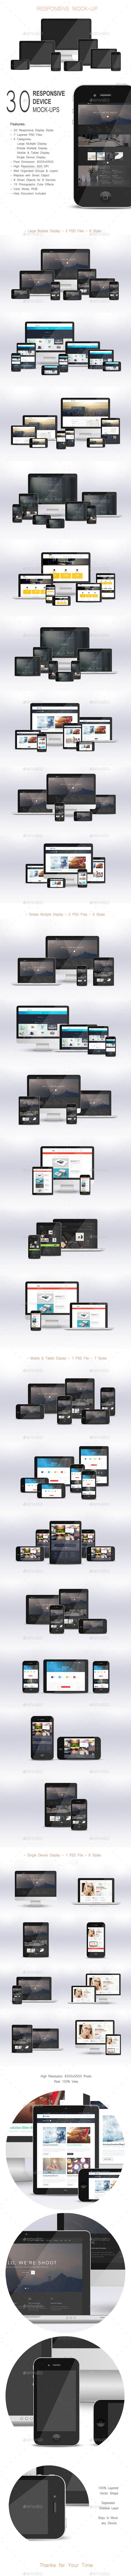 Responsive Devices Mock-ups - Multiple Displays